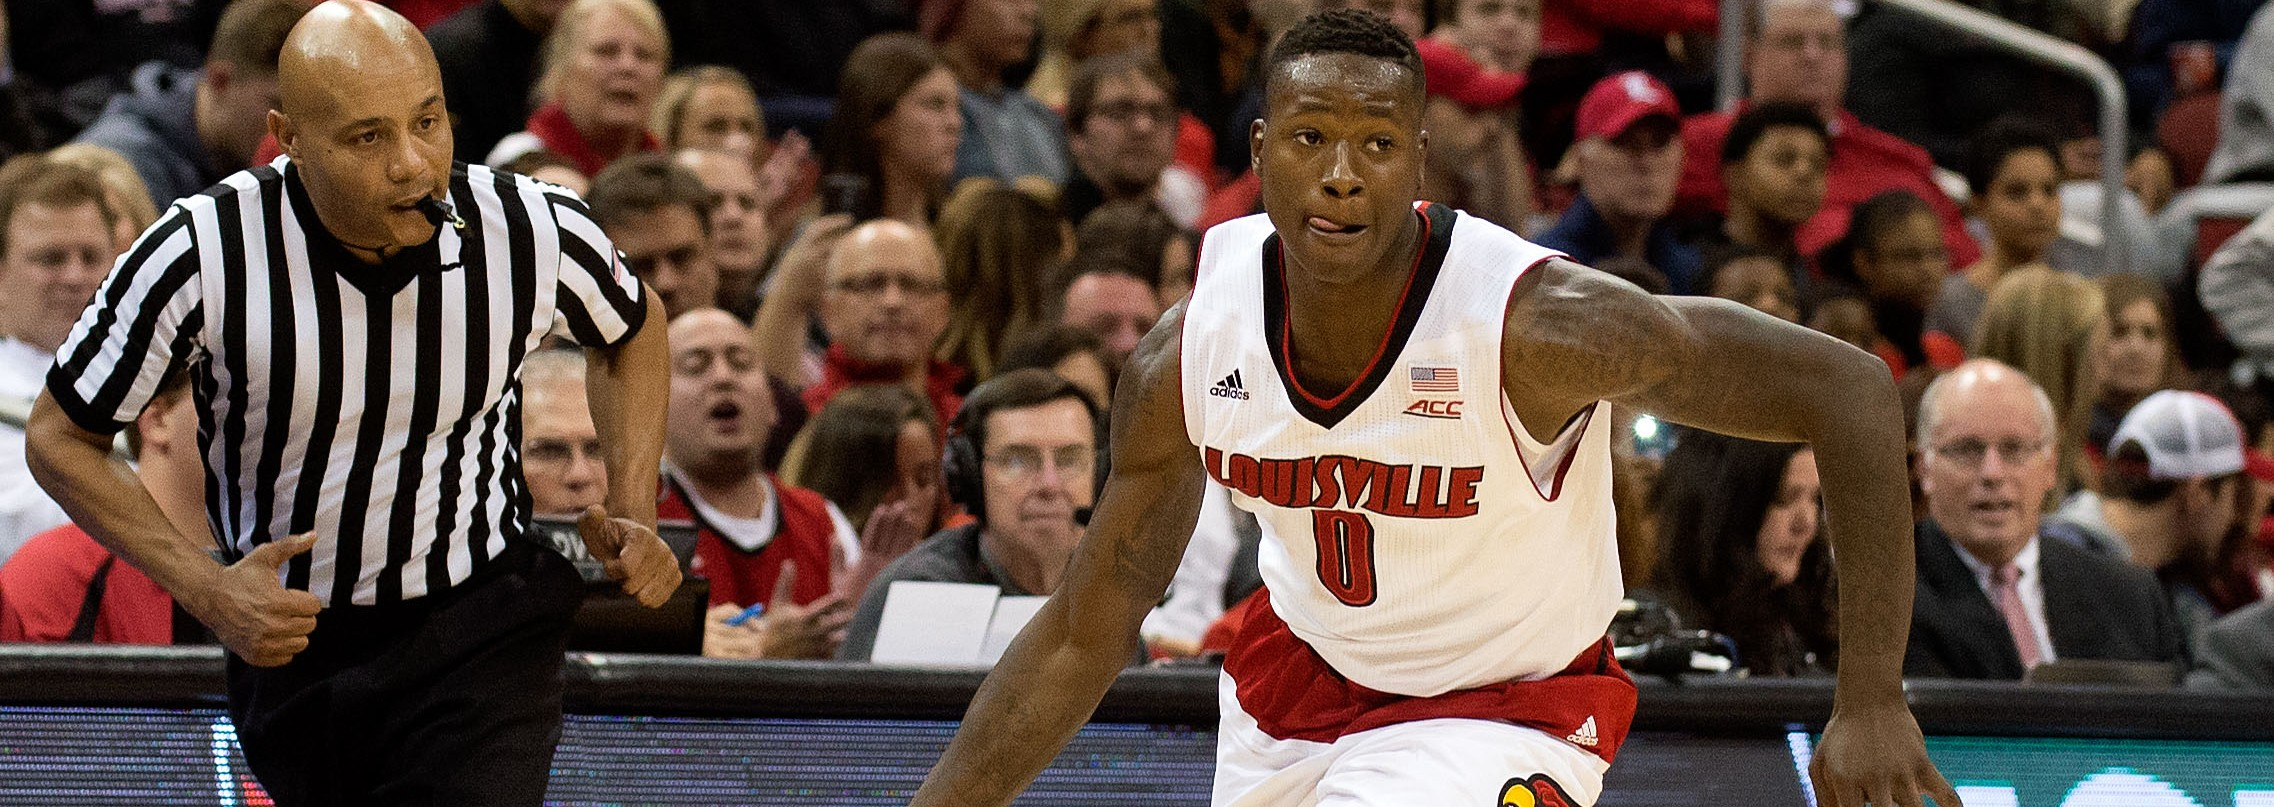 Terry Rozier vs. Jacksonville State 11-17-2014 Photo by Adam Creech Fitted